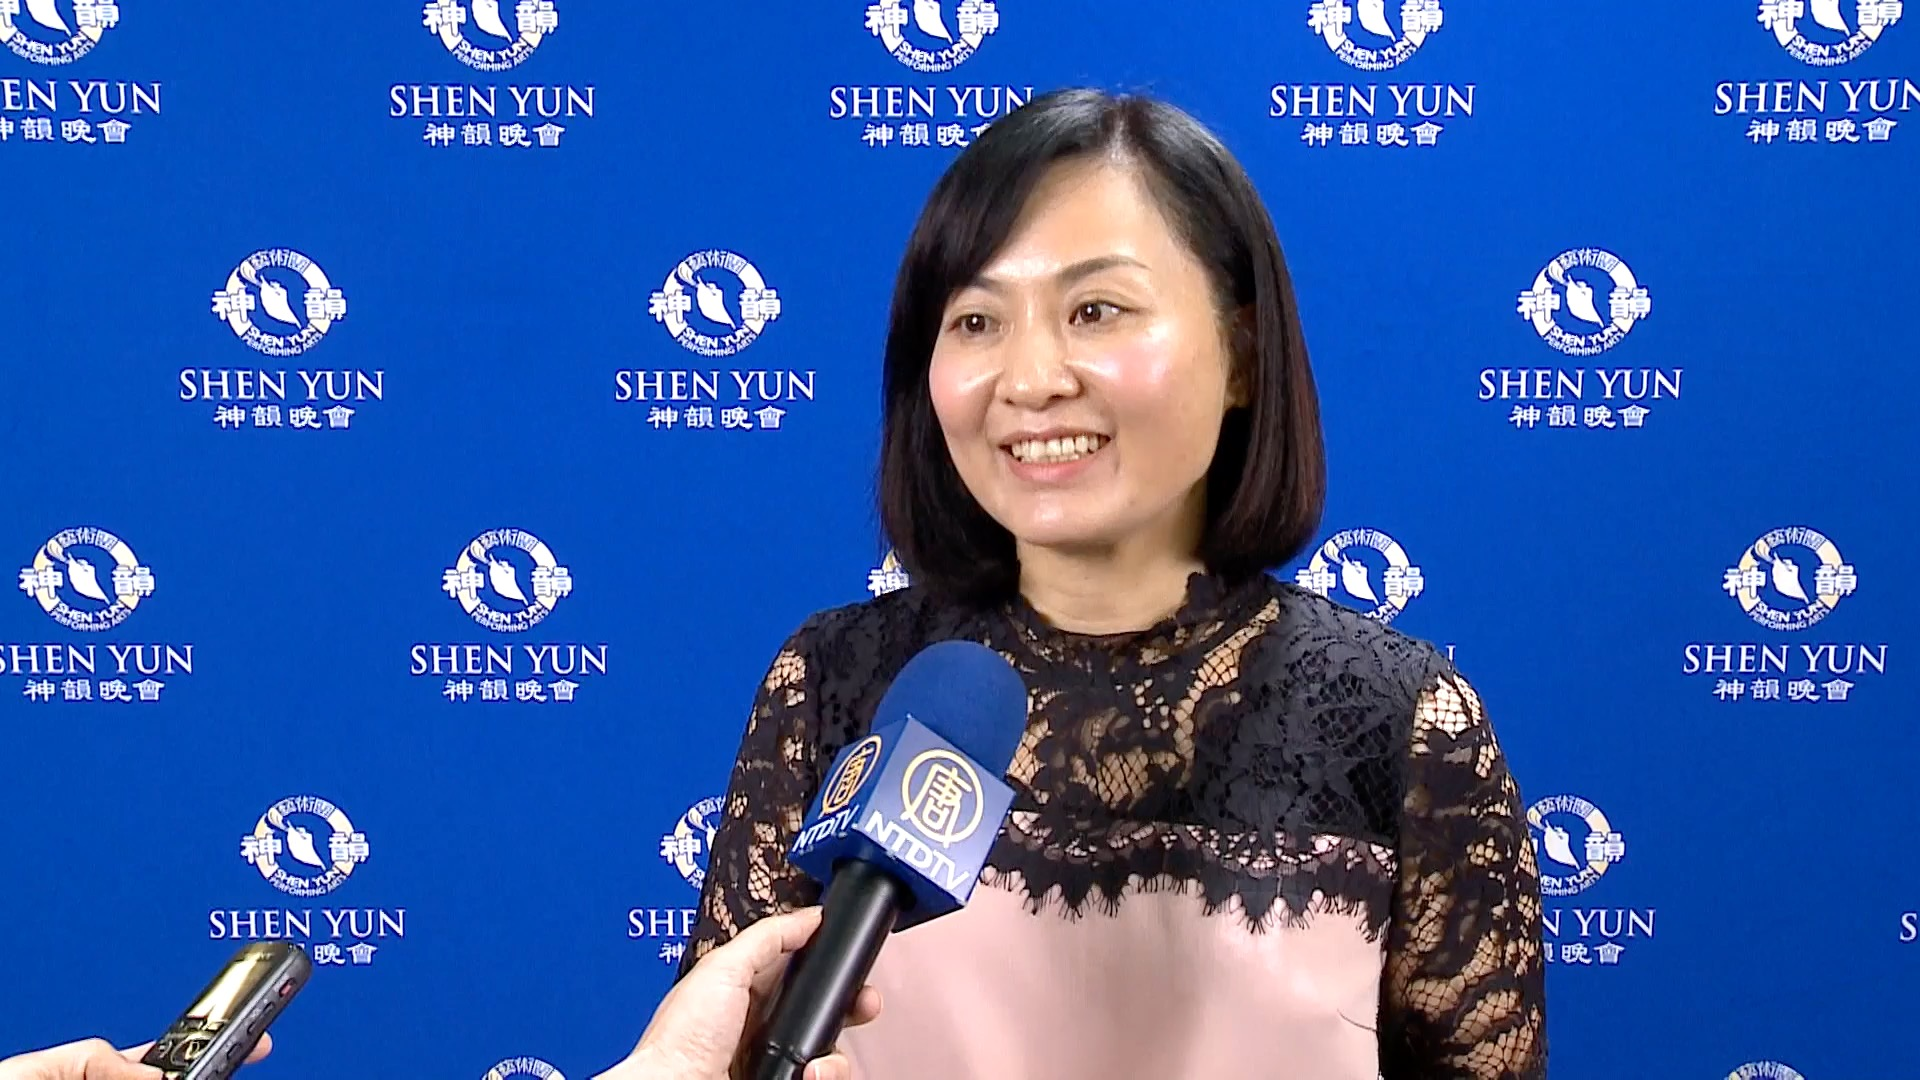 Following Shen Yun, Orchestra Continues its Tour Through Asia